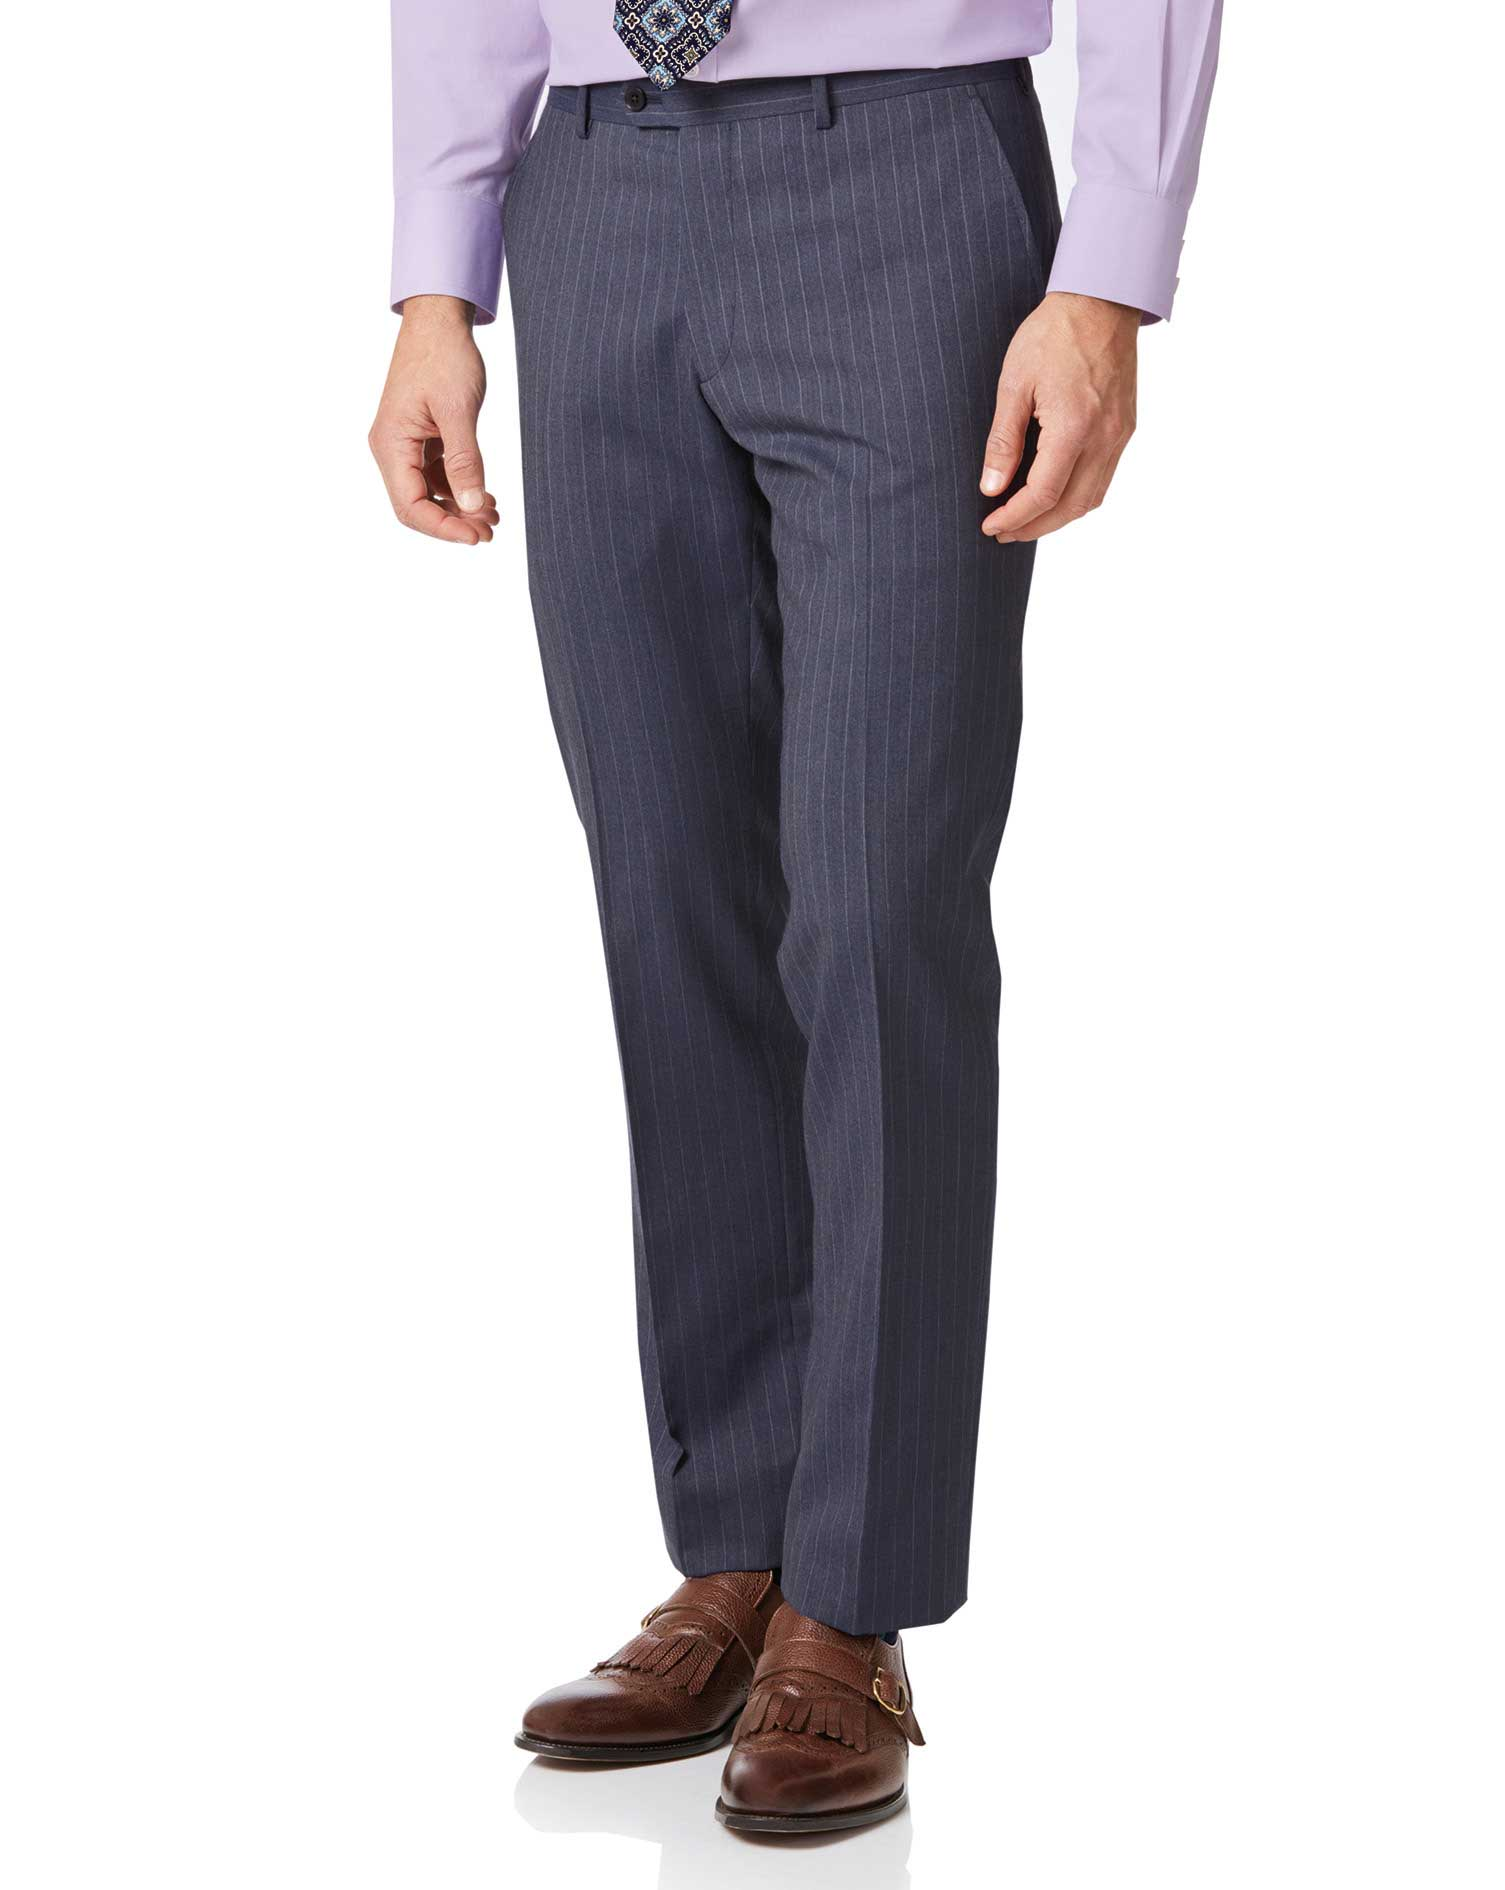 Airforce Stripe Classic Fit Panama Business Suit Trouser Size W38 L34 by Charles Tyrwhitt